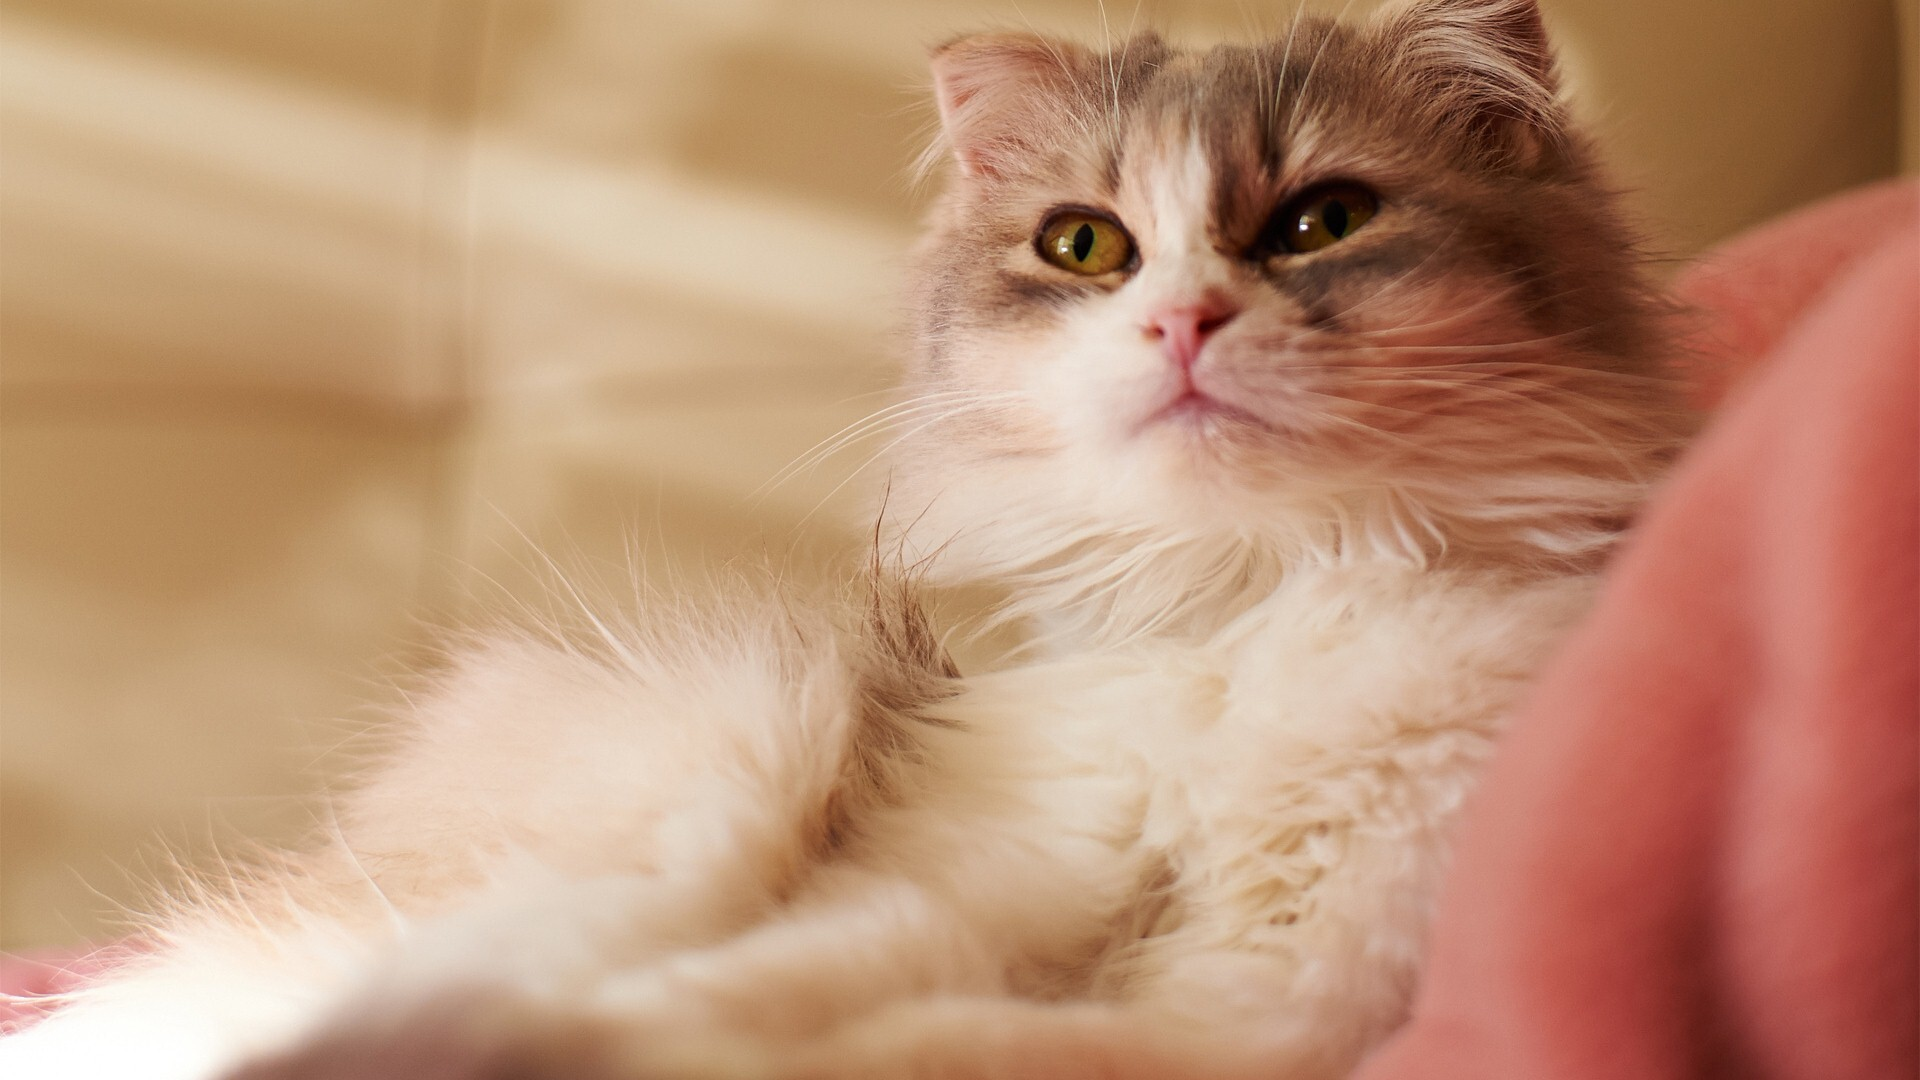 Free Download Images of Cat | HD Wallpapers